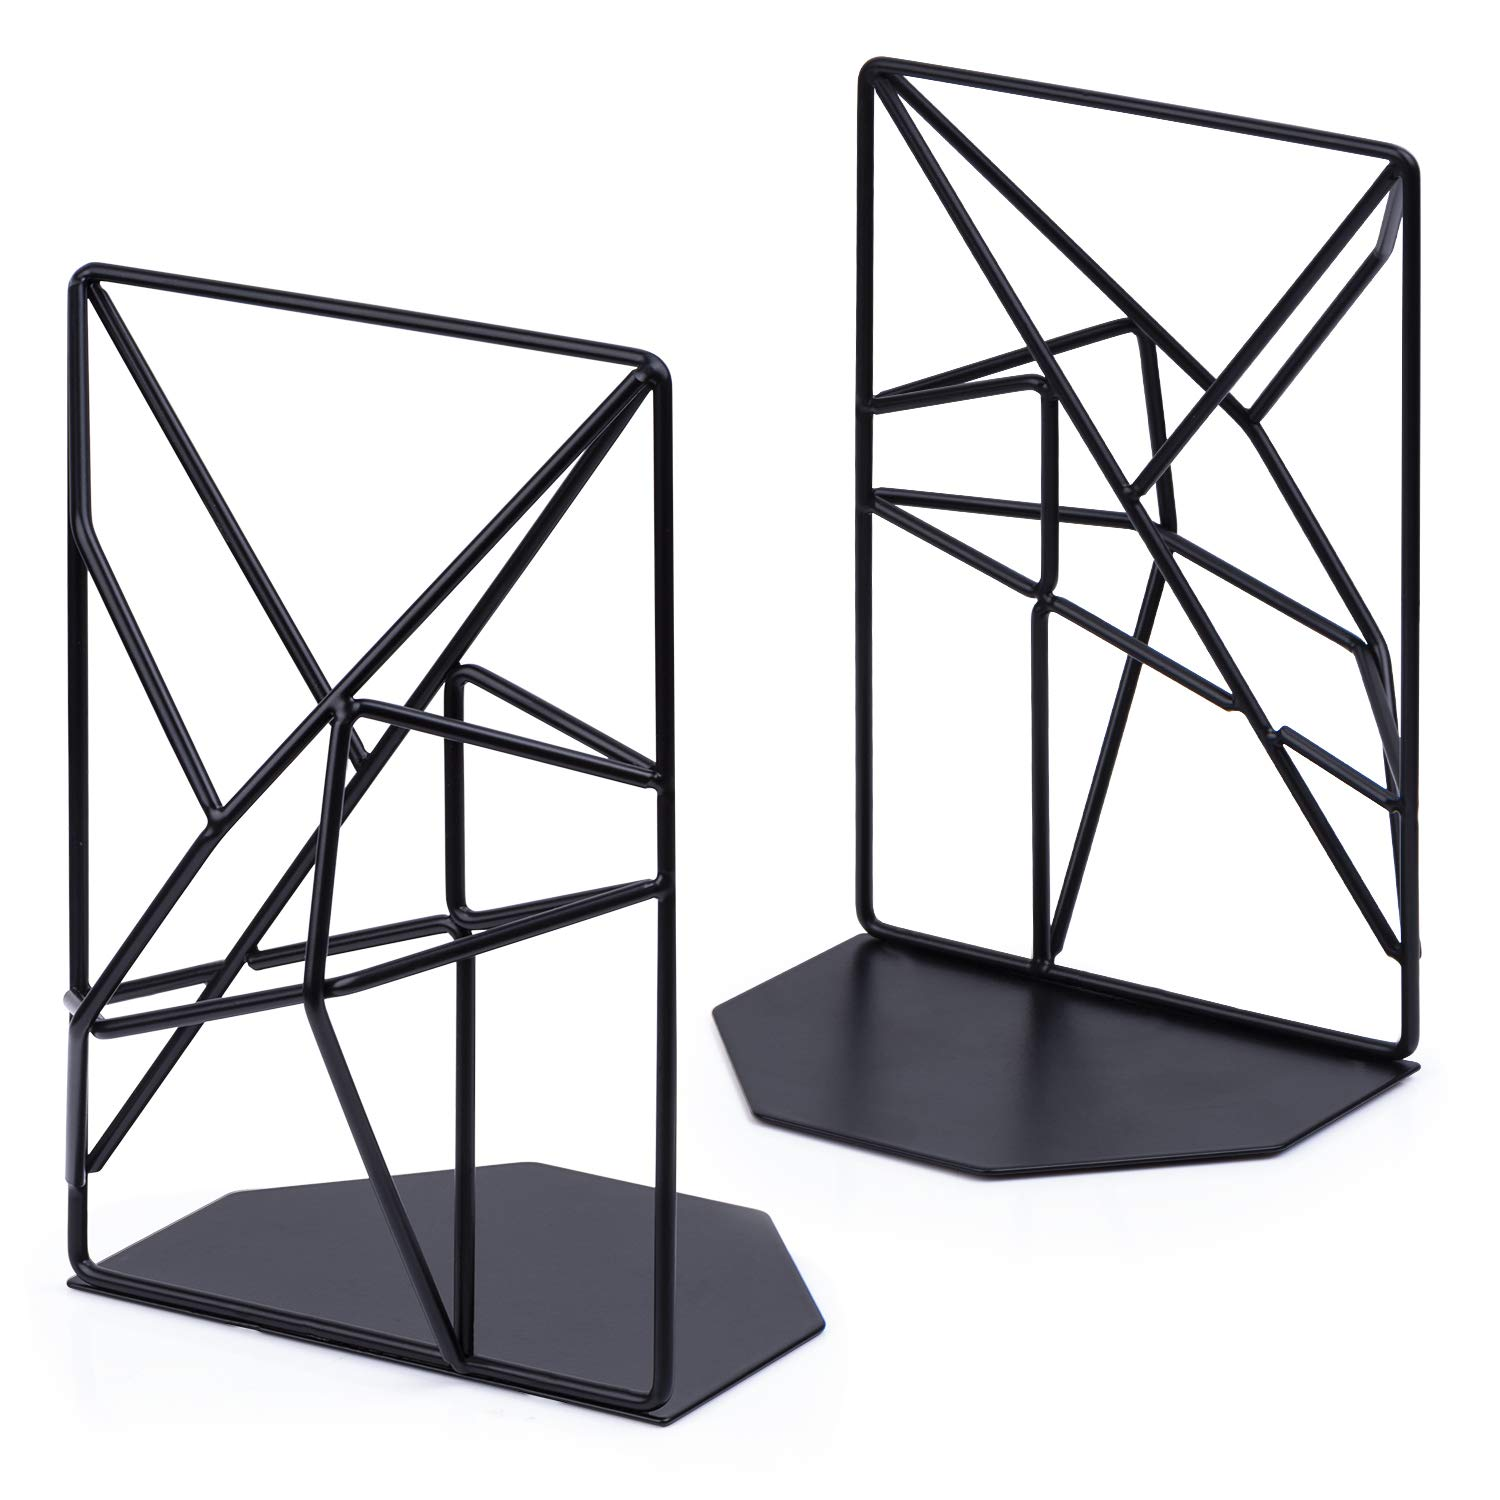 SRIWATANA Bookends Black, Decorative Metal Book Ends Supports for Shelves, Unique Geometric Design(1 Pair) by SRIWATANA